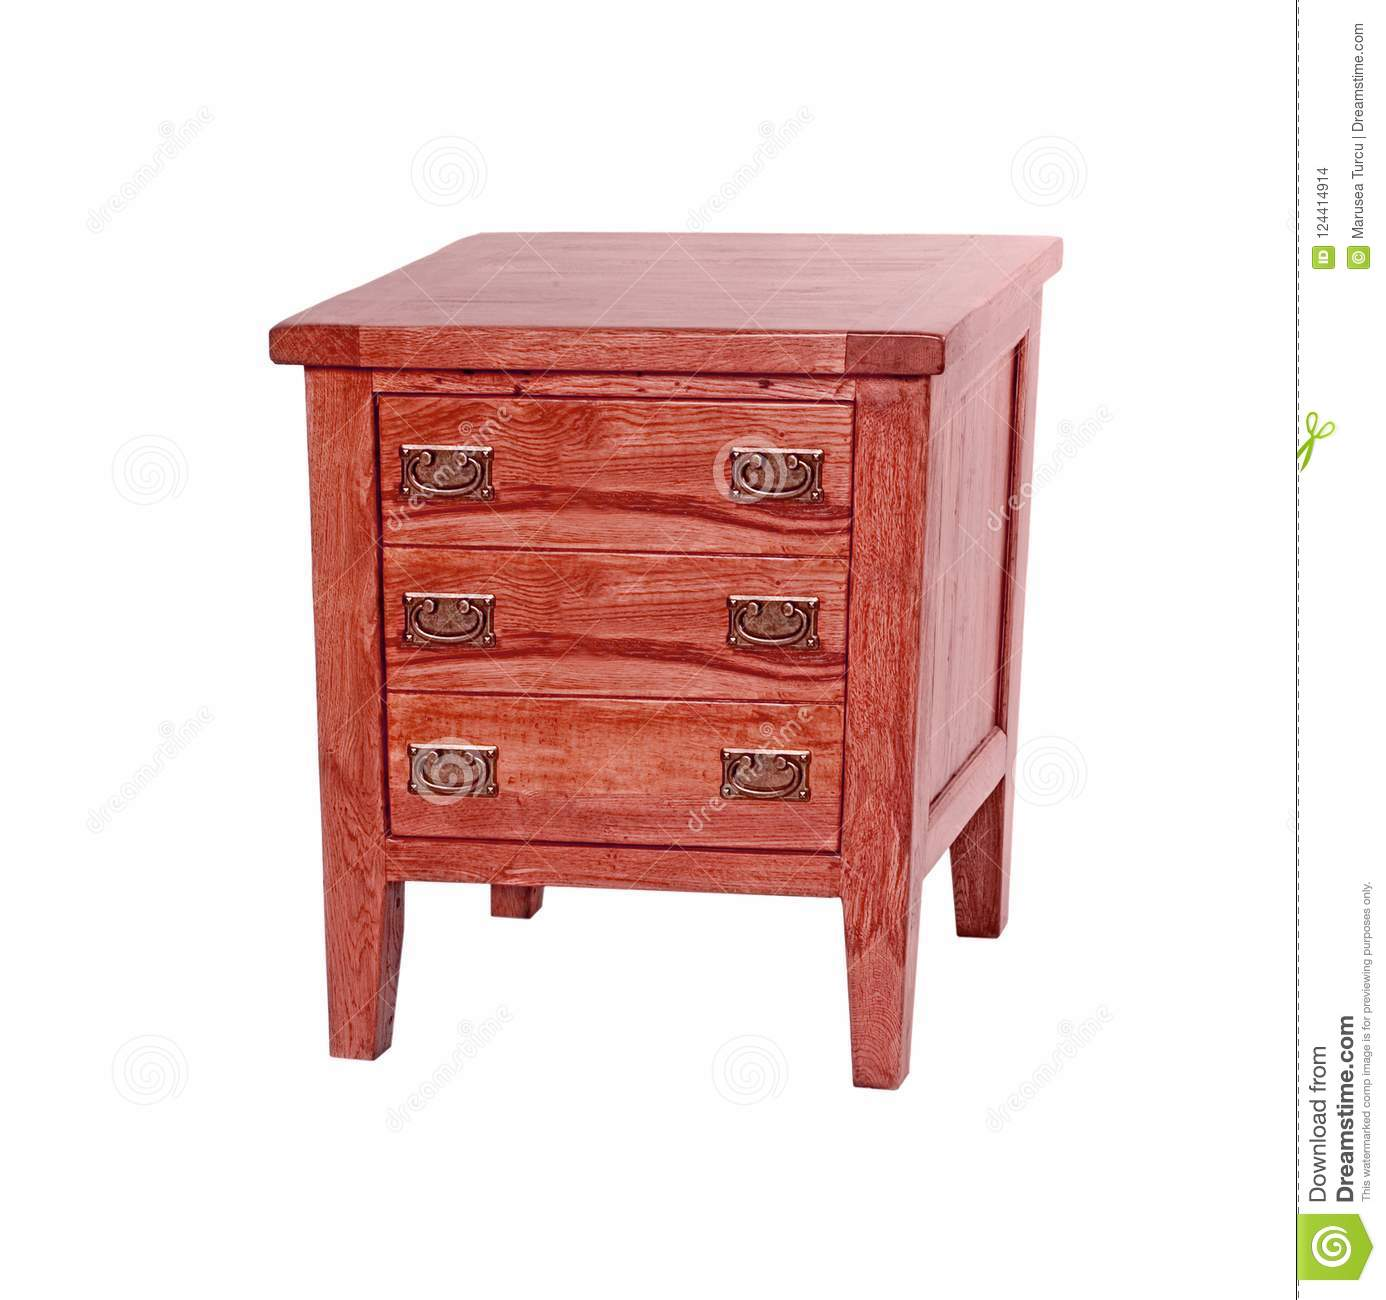 Bedside table made of wood